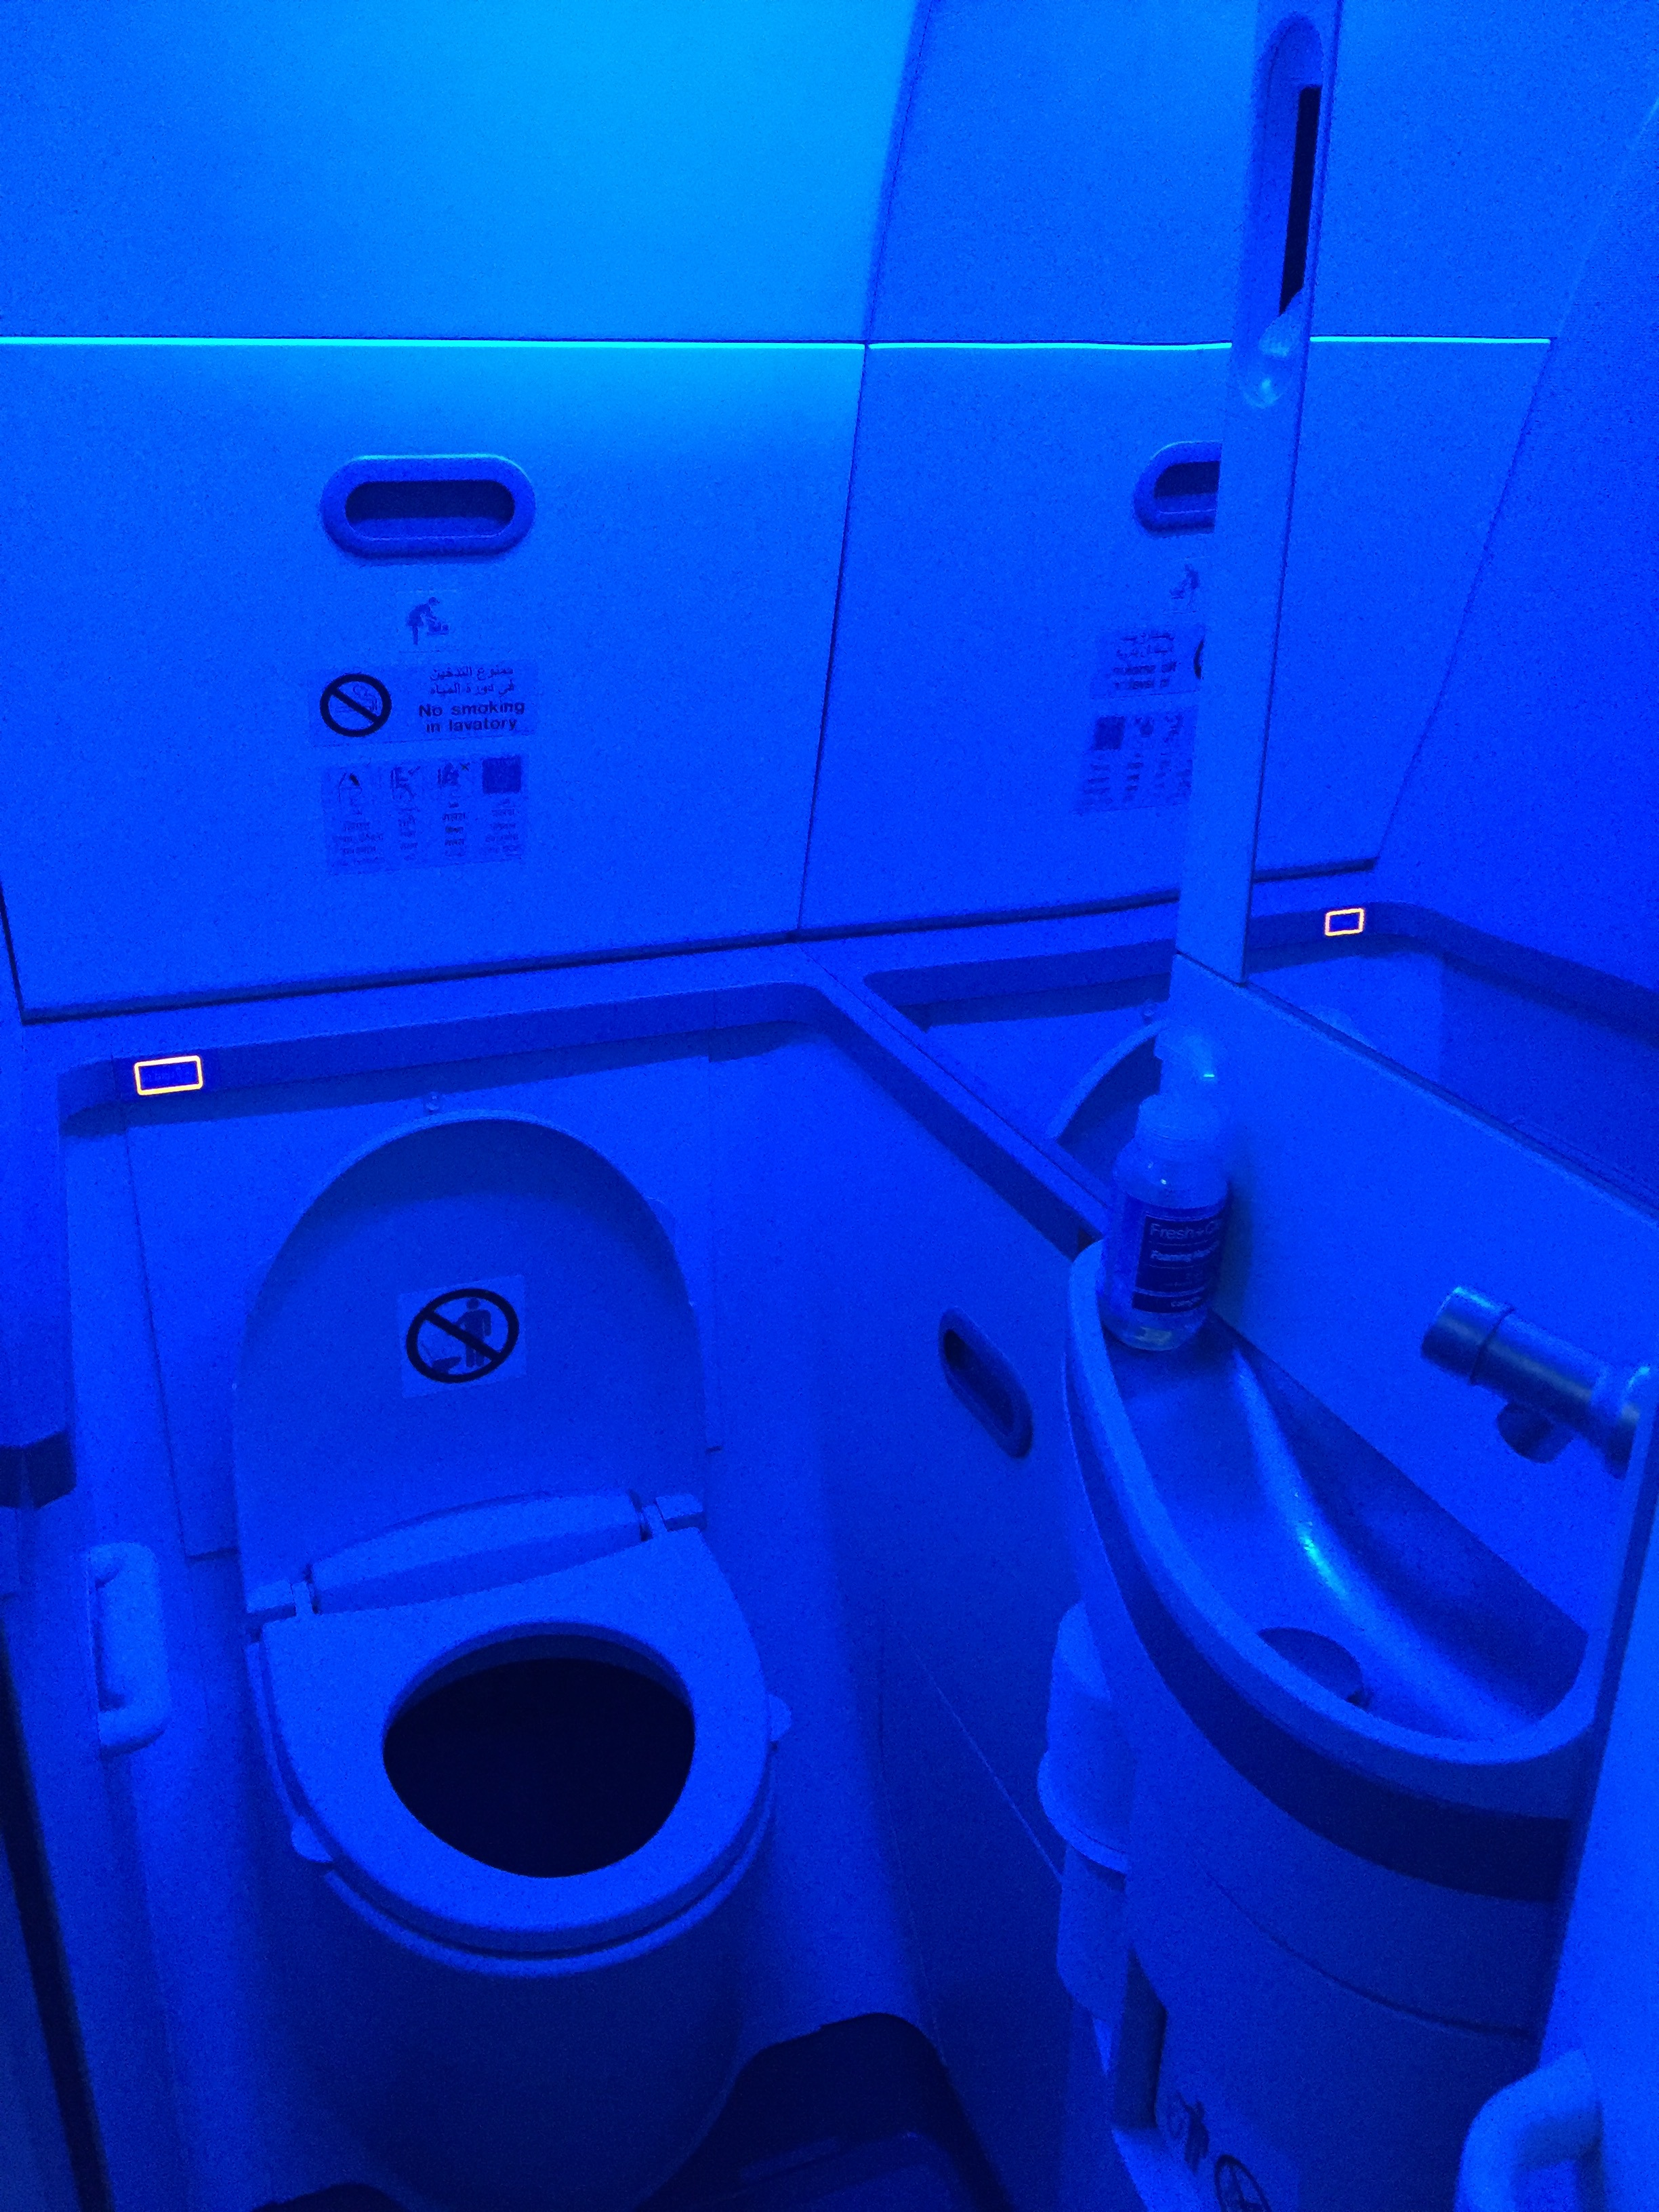 This is the futuristic-looking bathroom of the Boeing 737 MAX